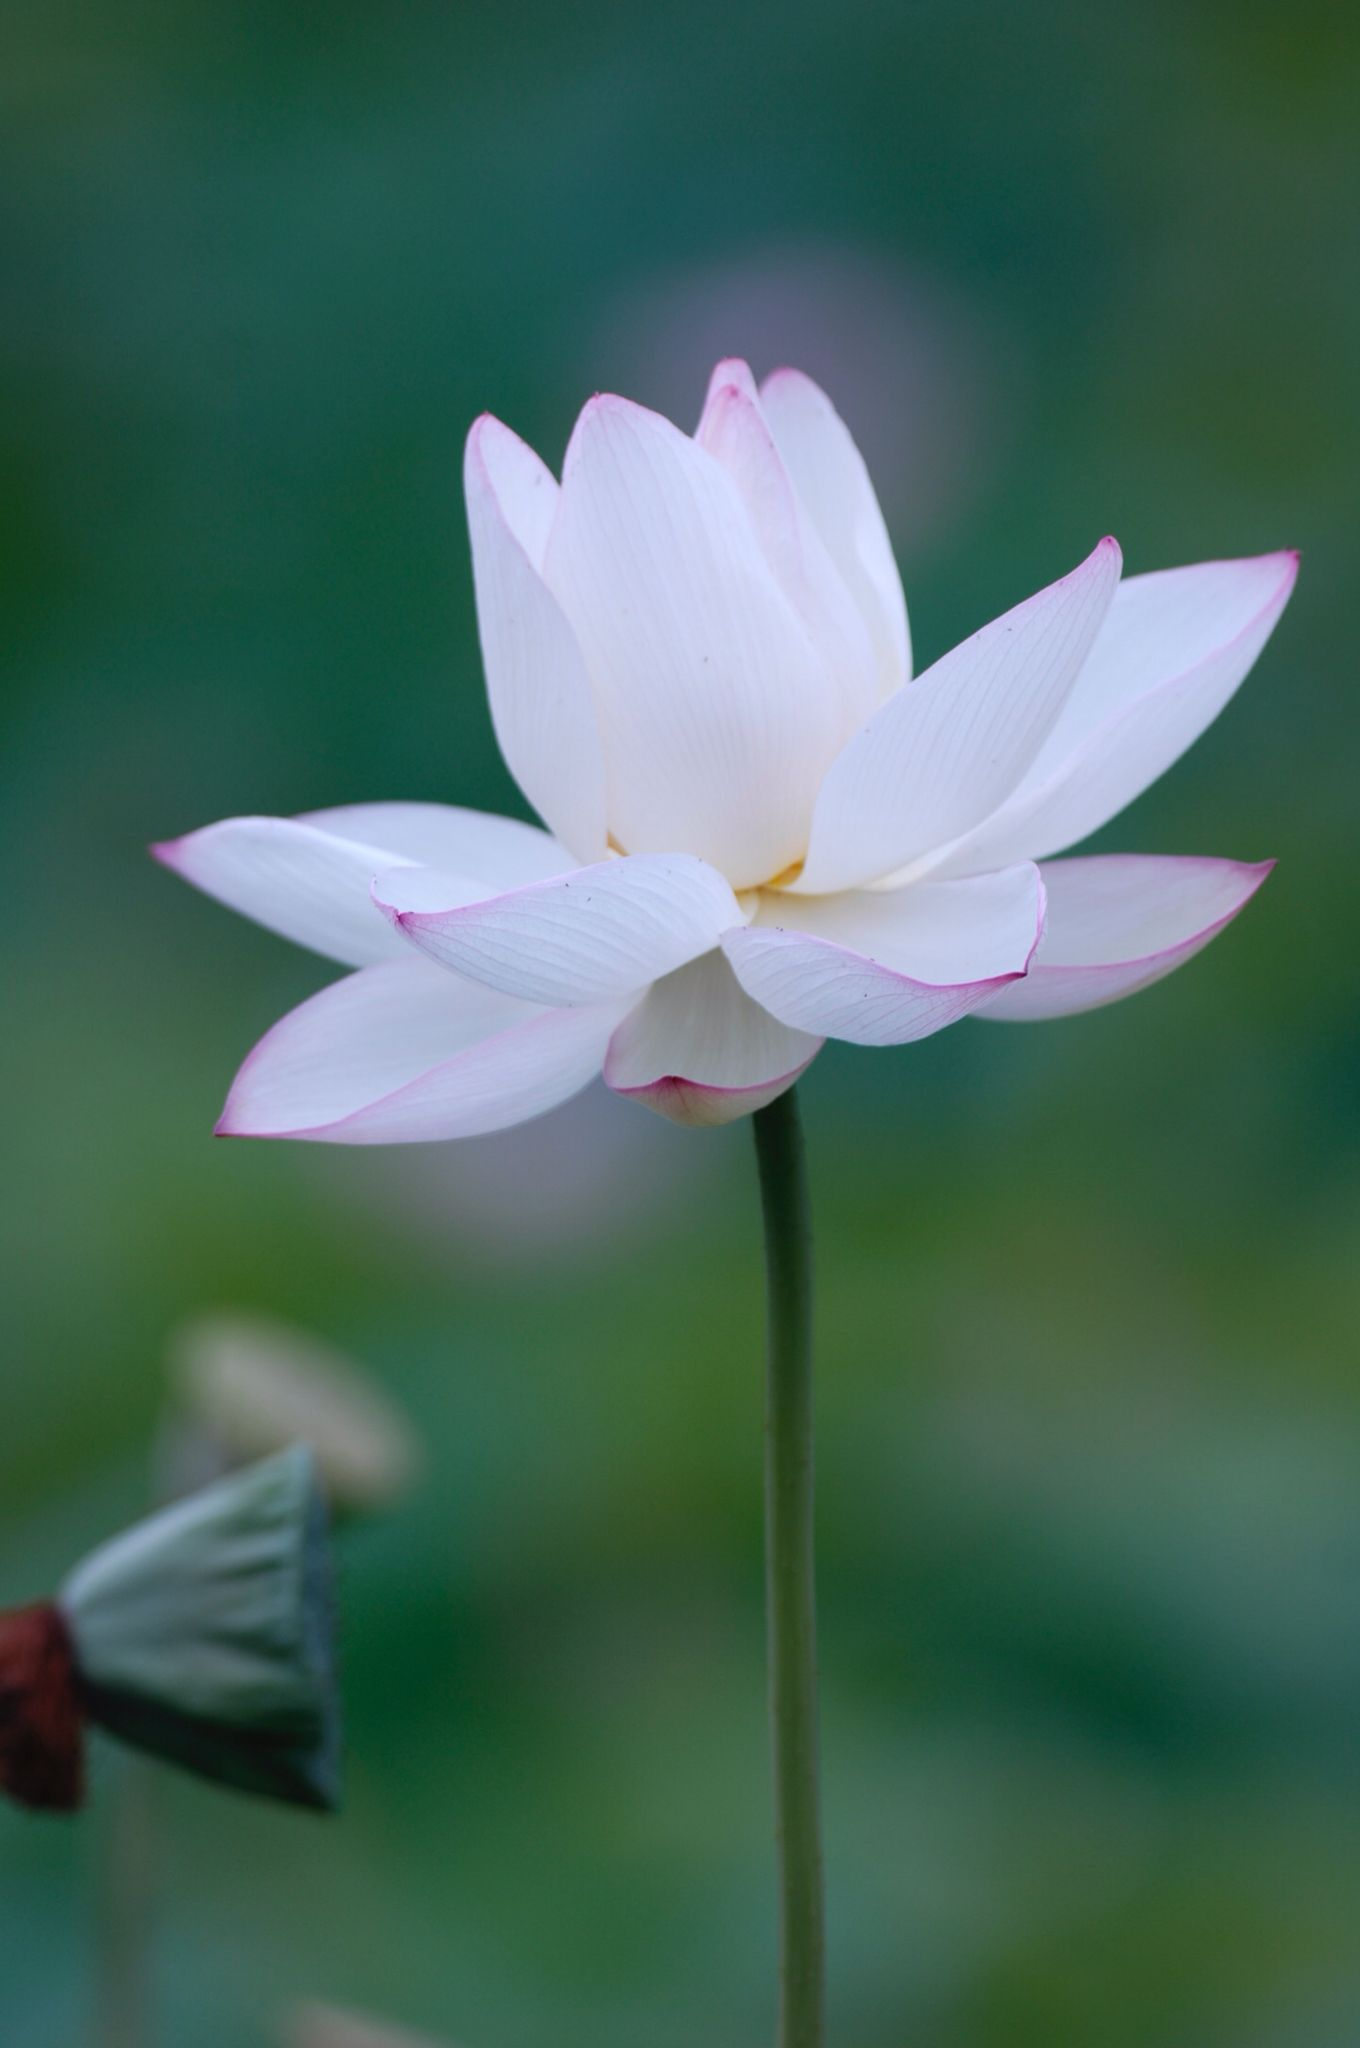 Pin By Shirle Hsu On Lovely Pinterest Lotus Flowers And